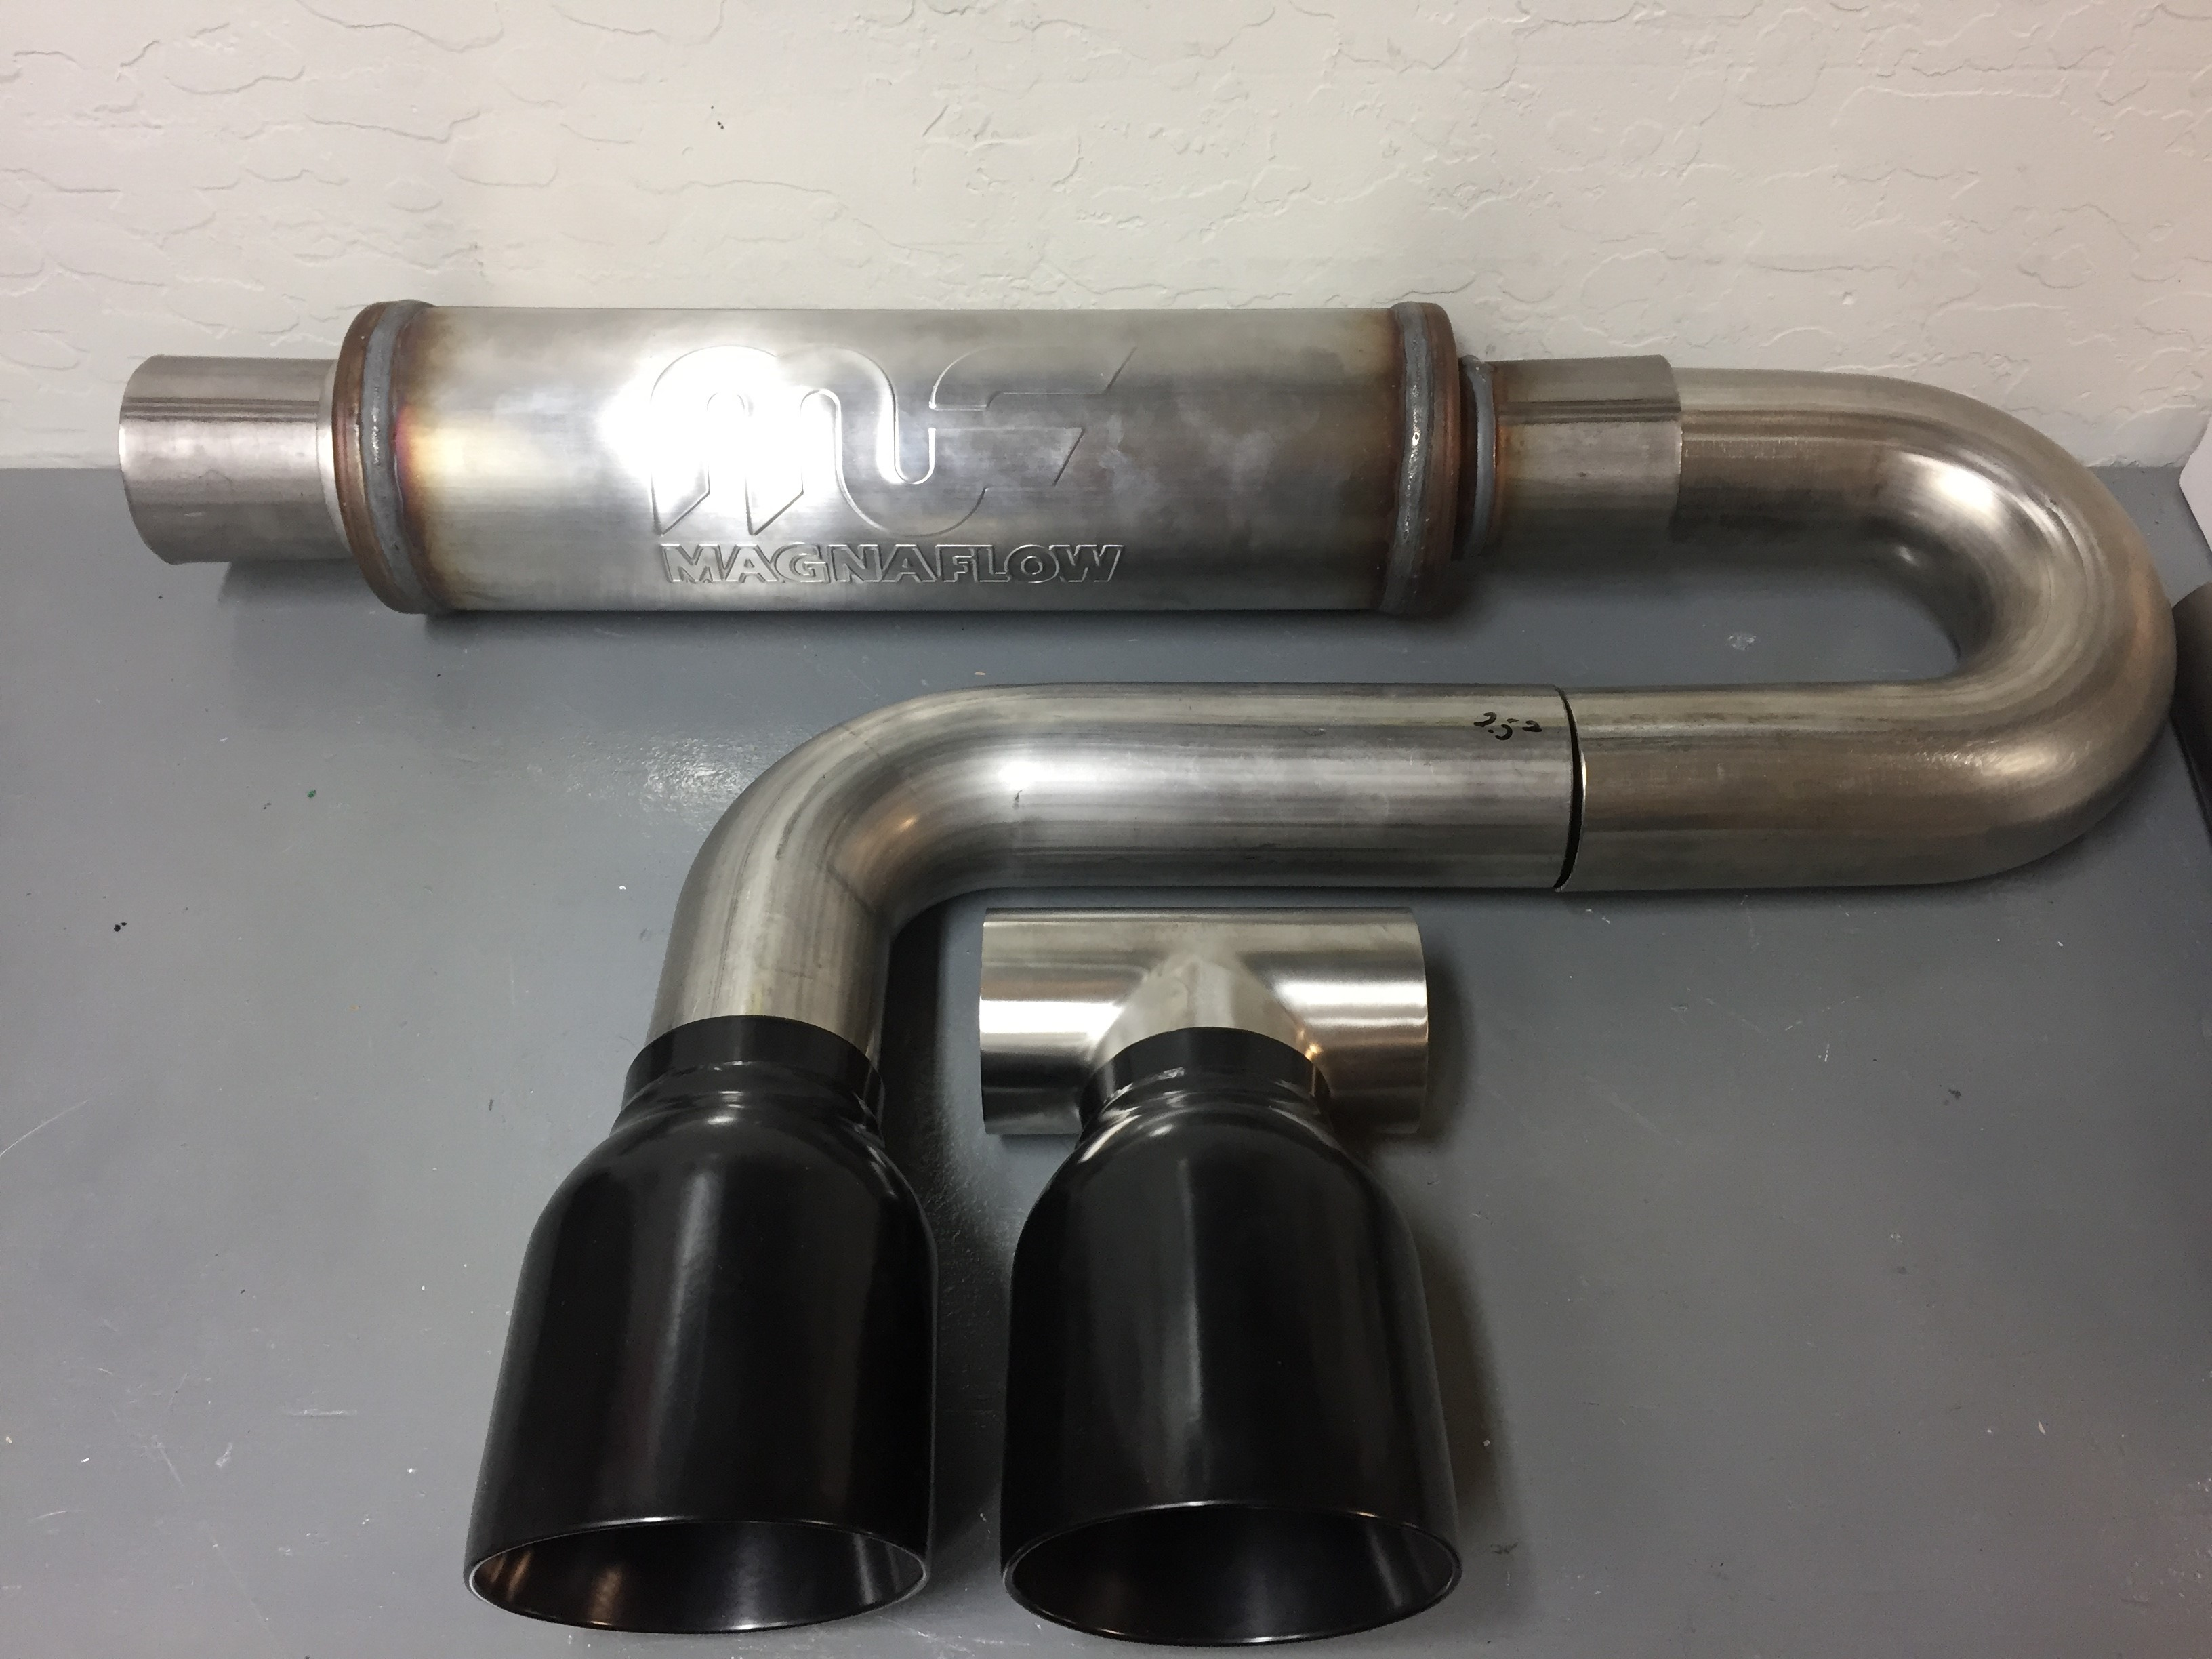 FS: Custom Exhaust Components - including Magnaflow muffler and